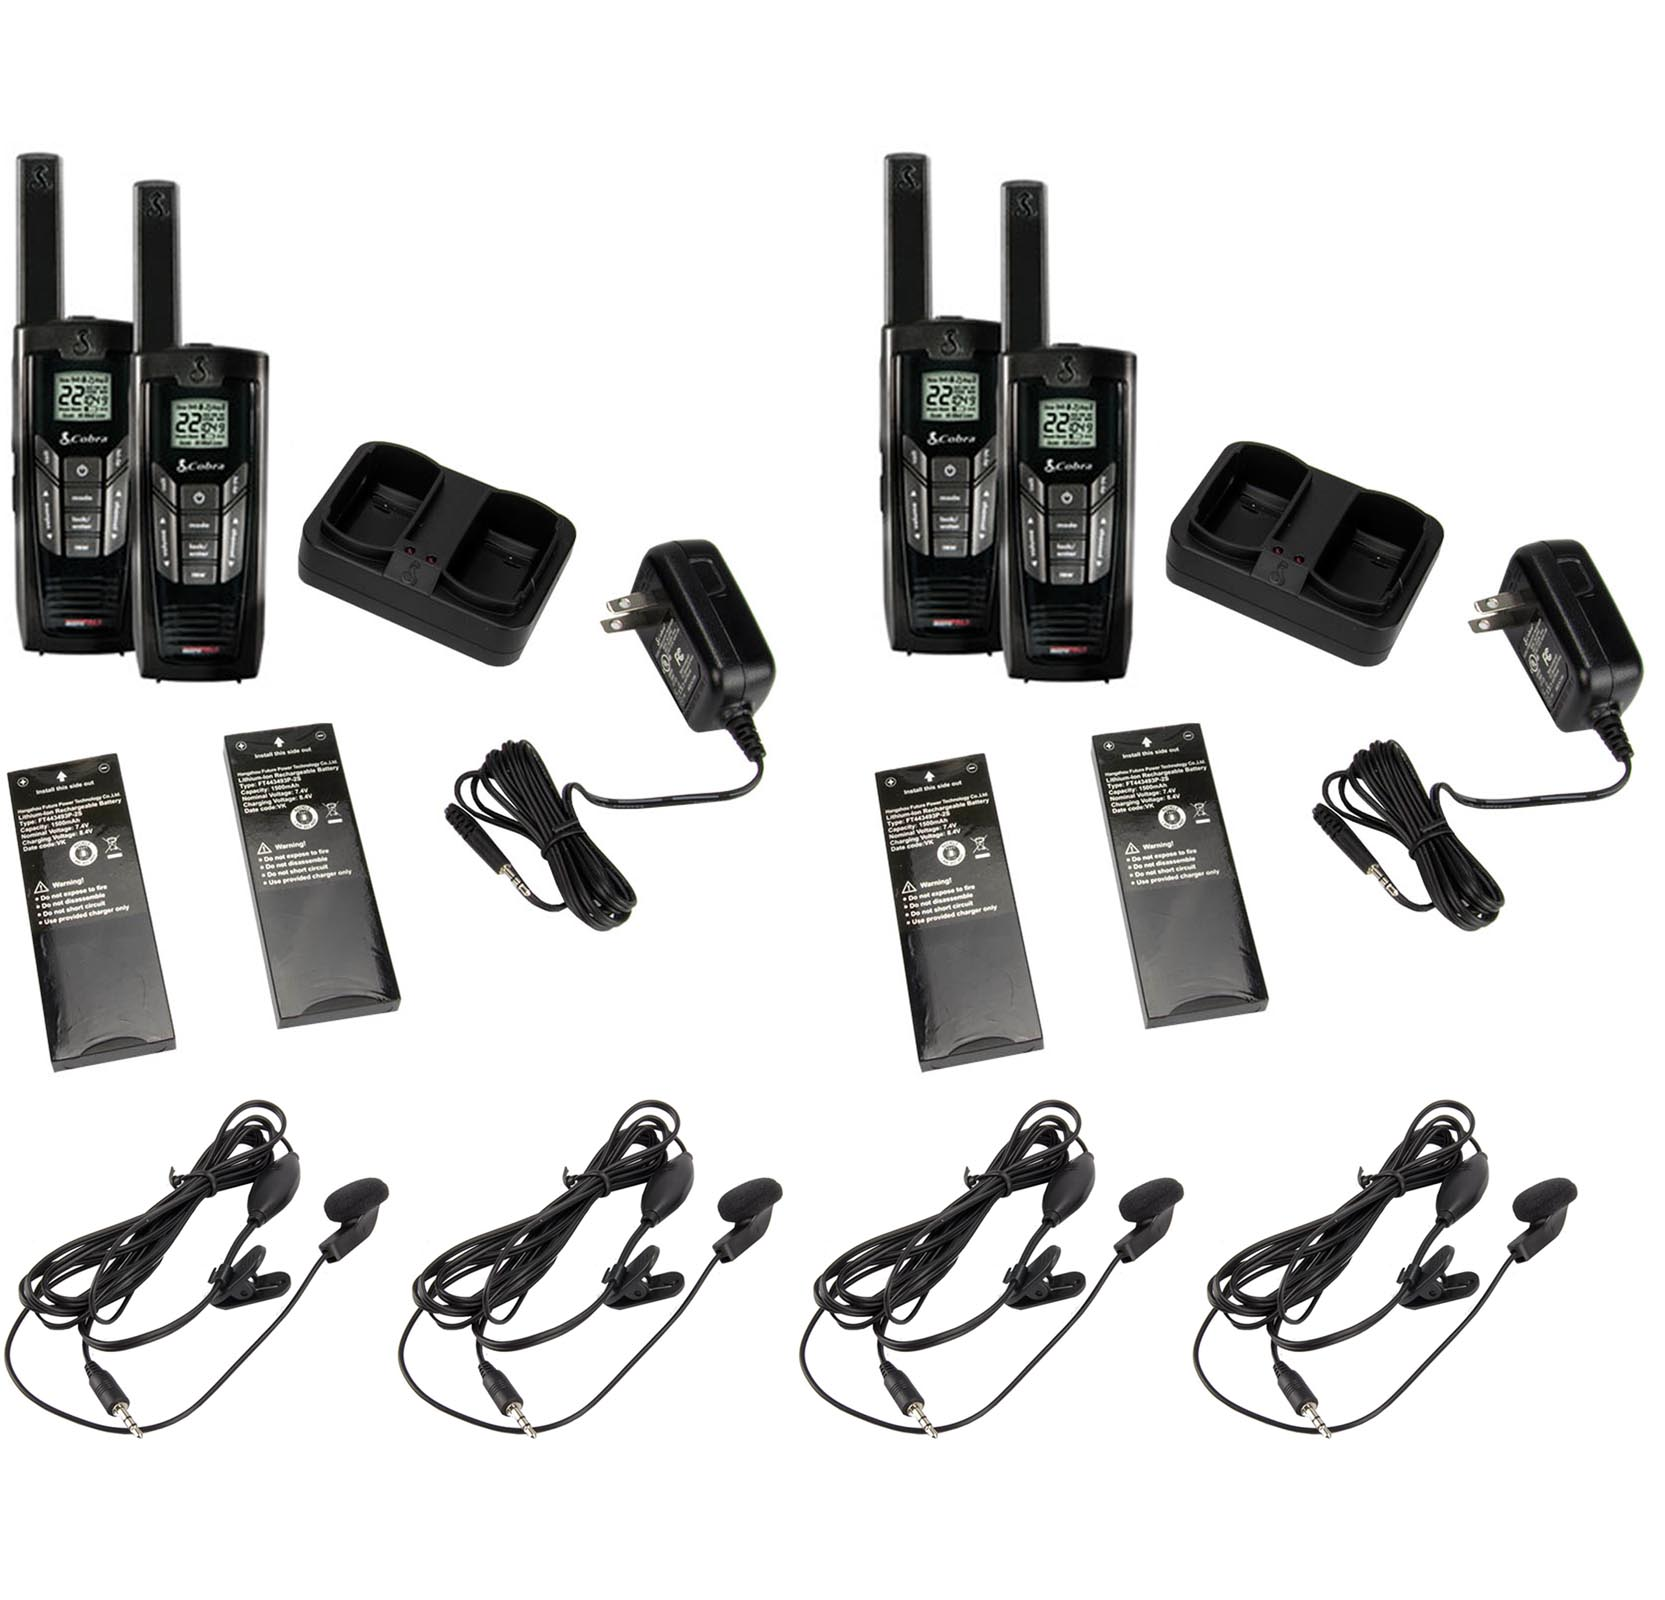 (4) COBRA CXR925 35 Mile 22 Ch Two Way Radios Walkie Talkies + Earbud & Mic Sets